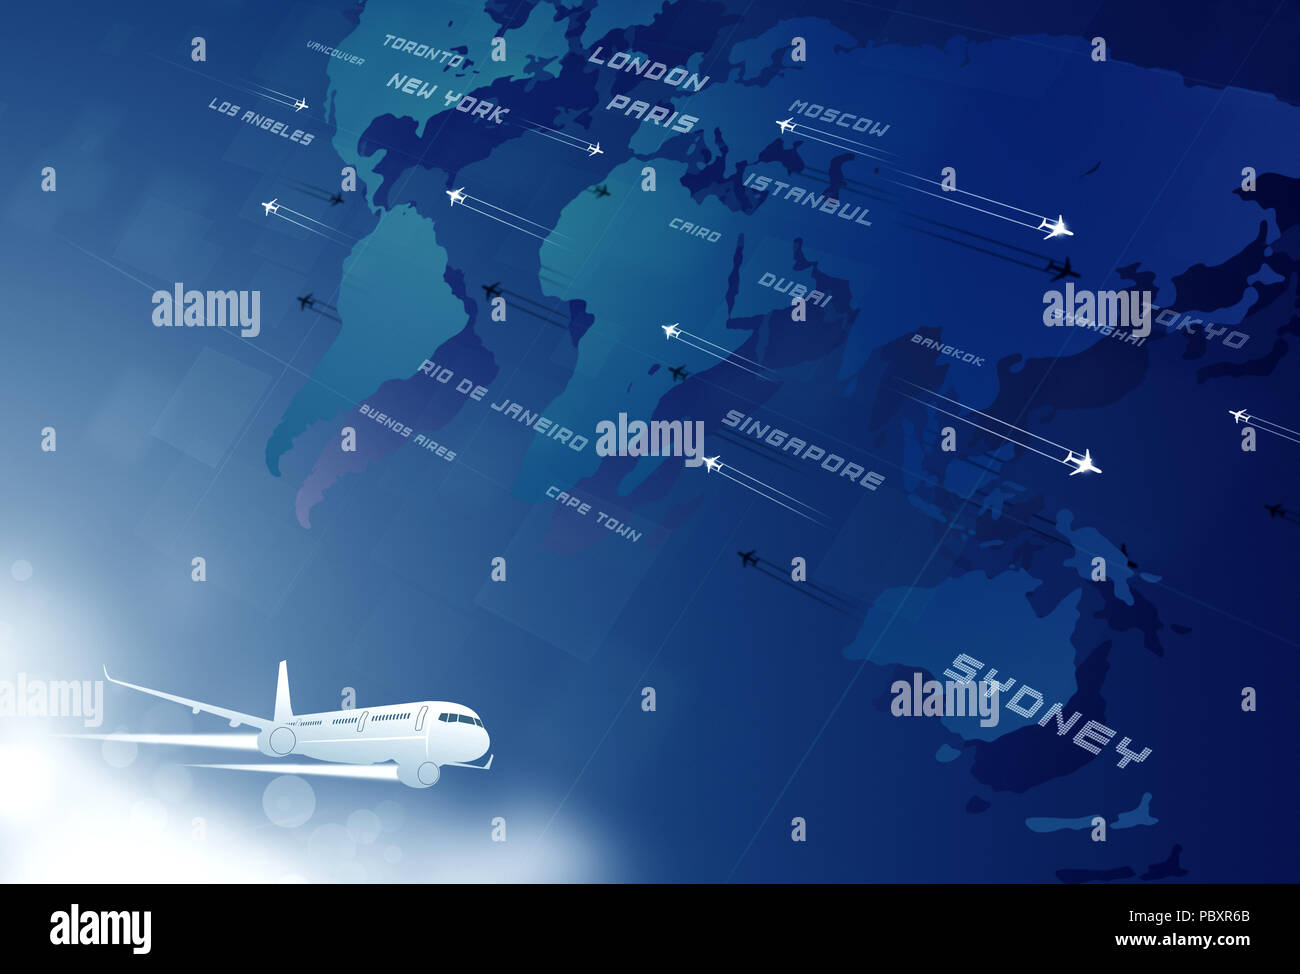 aviation background with many planes on map with  cities names Stock Photo